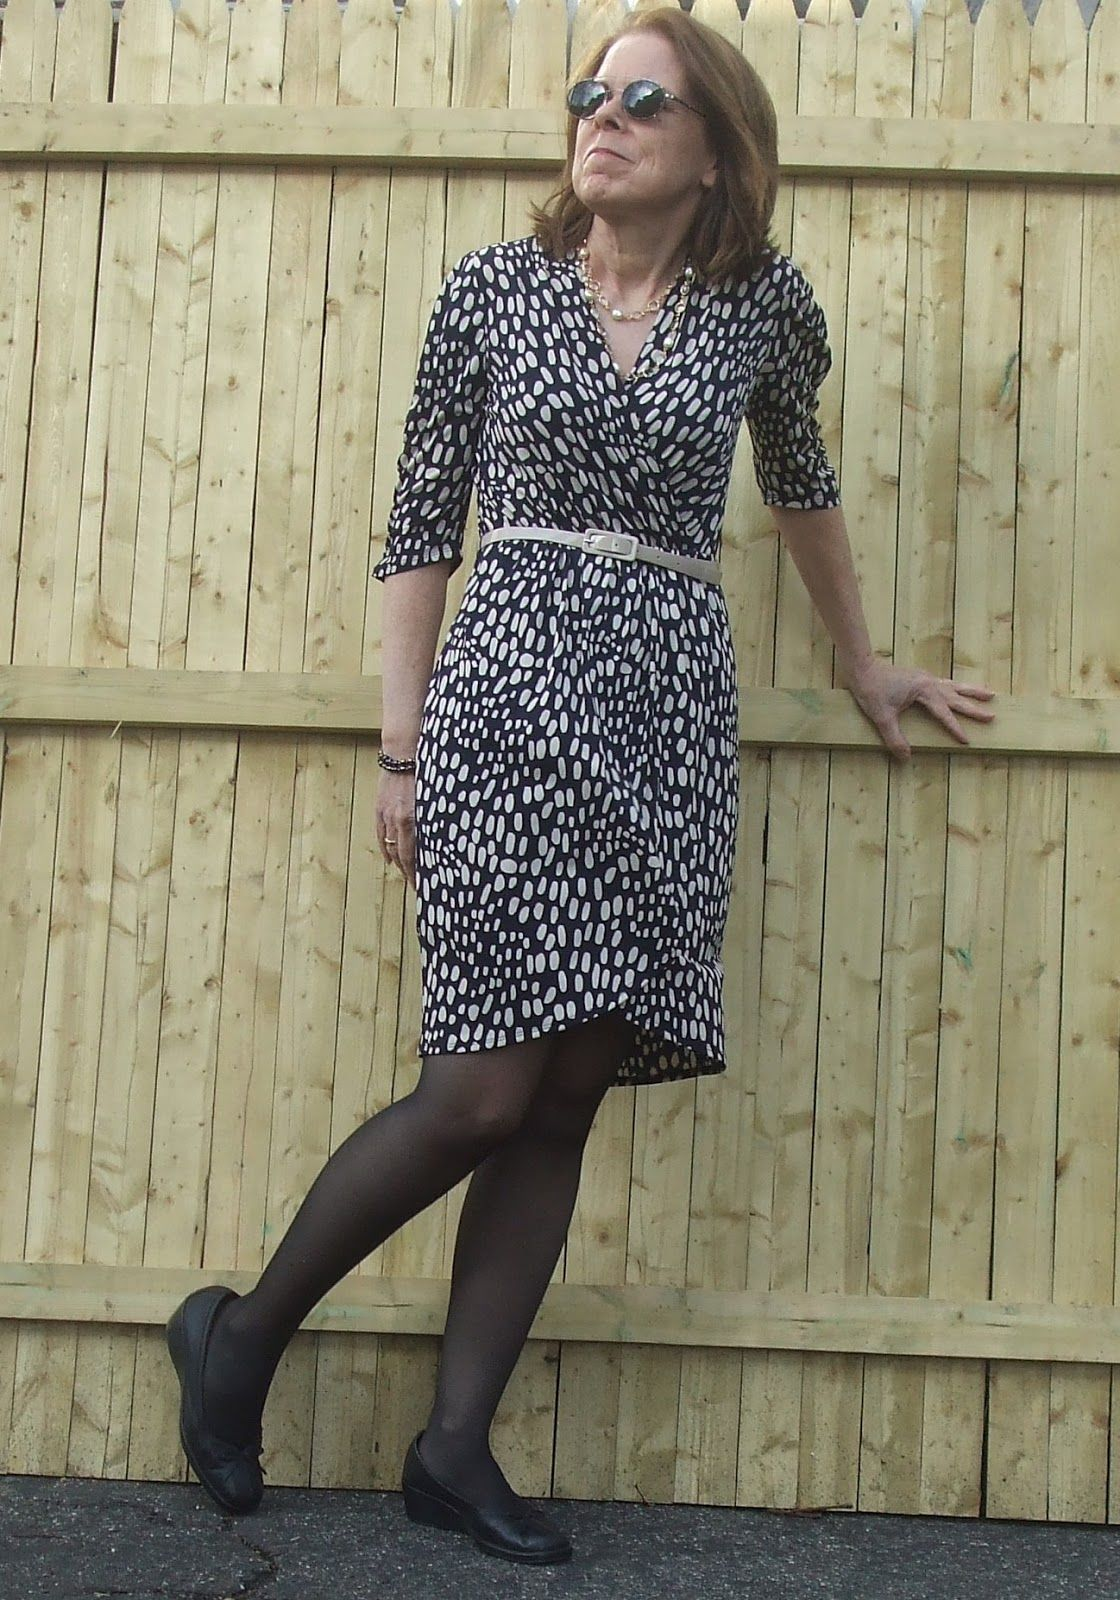 38128a8d74 Flattering dress styles for women over 50. Lots of good suggestions ...